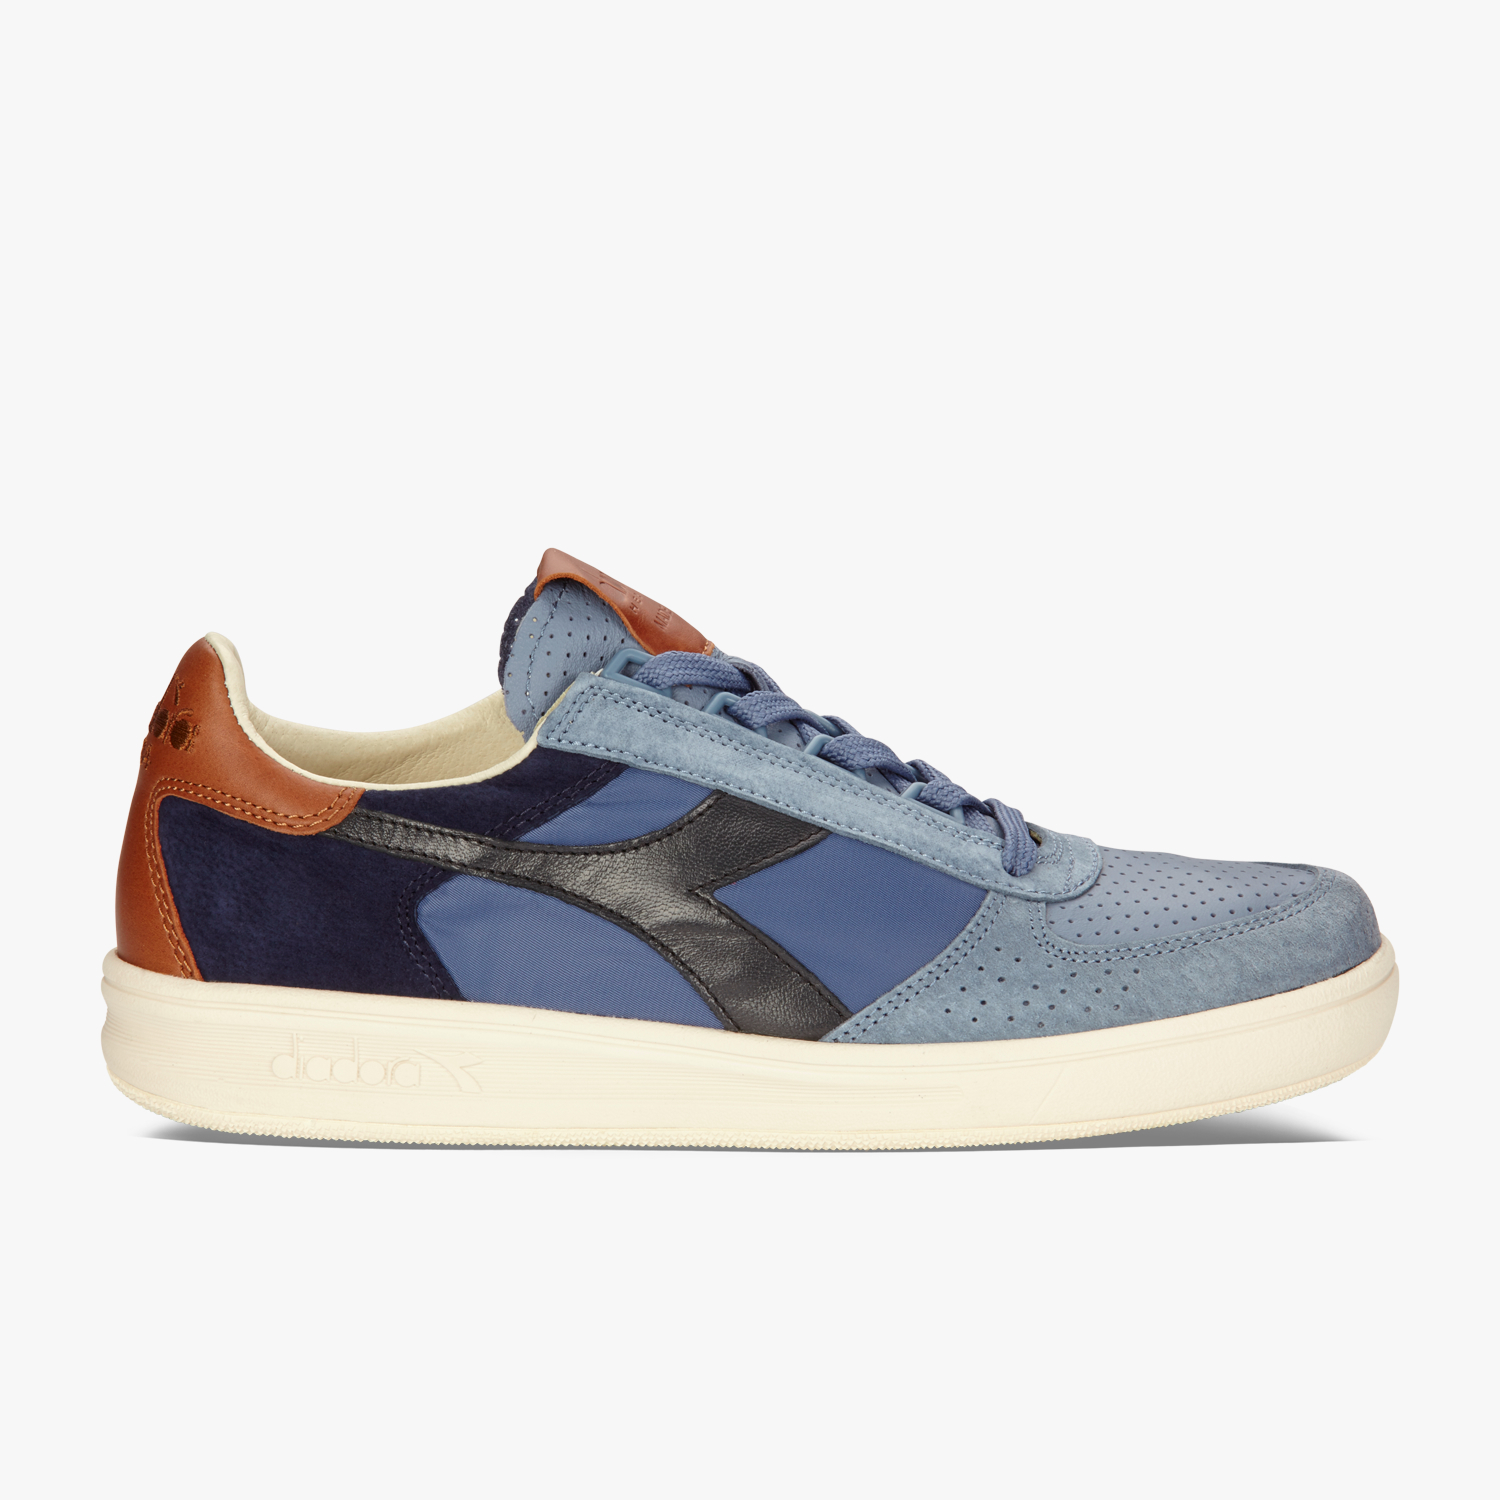 B.ELITE ITA - FOOTWEAR - Low-tops & sneakers Diadora Free Shipping Affordable Sale Shopping Online jnTeb6GZ